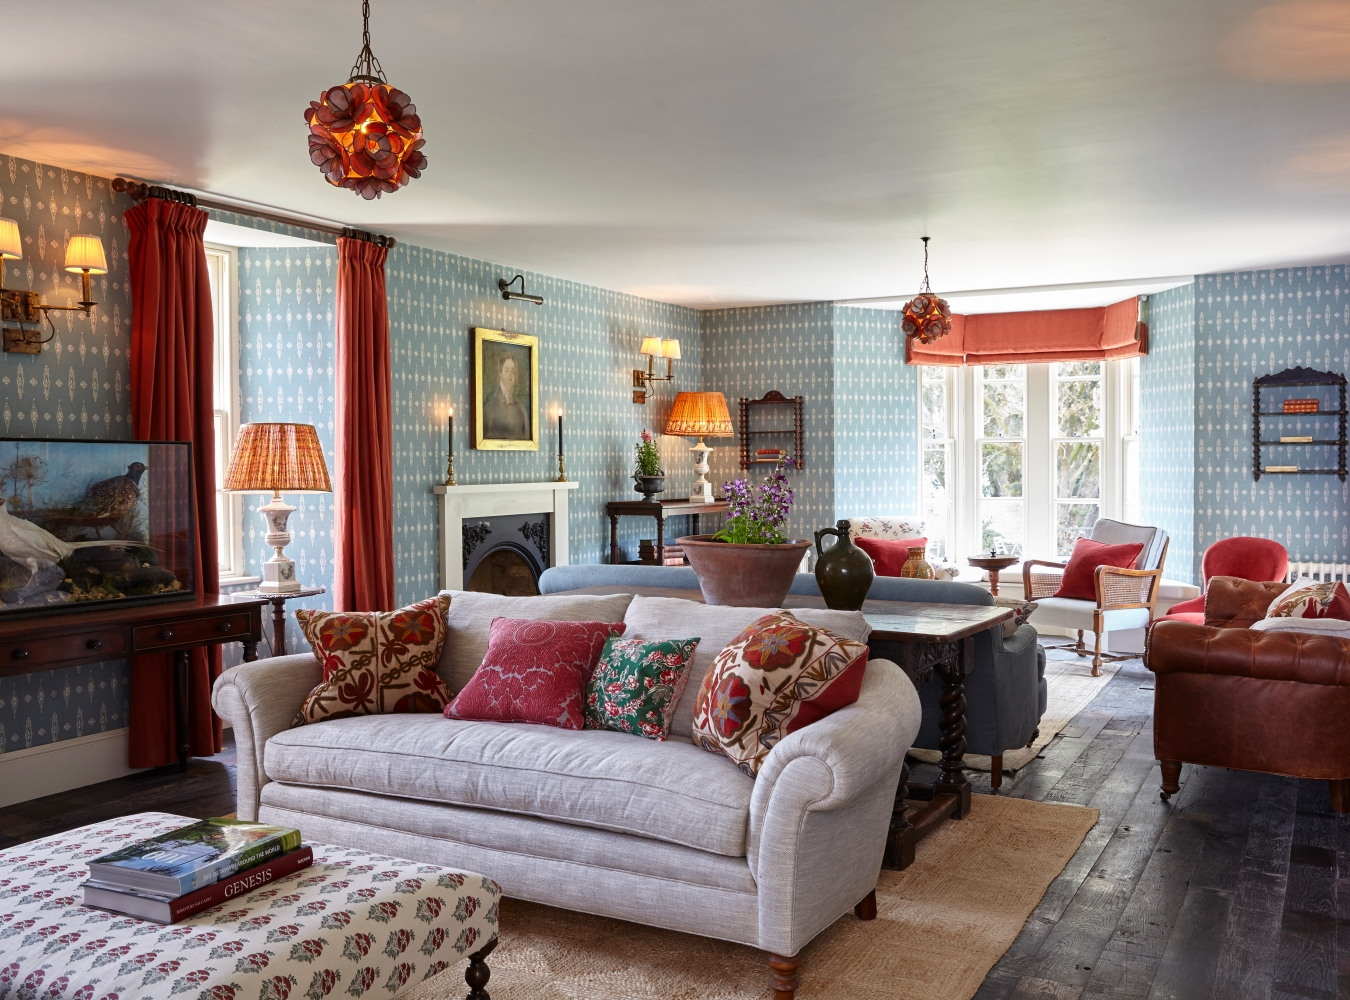 The Soho House Style: Get the Look Everyone's Talking About